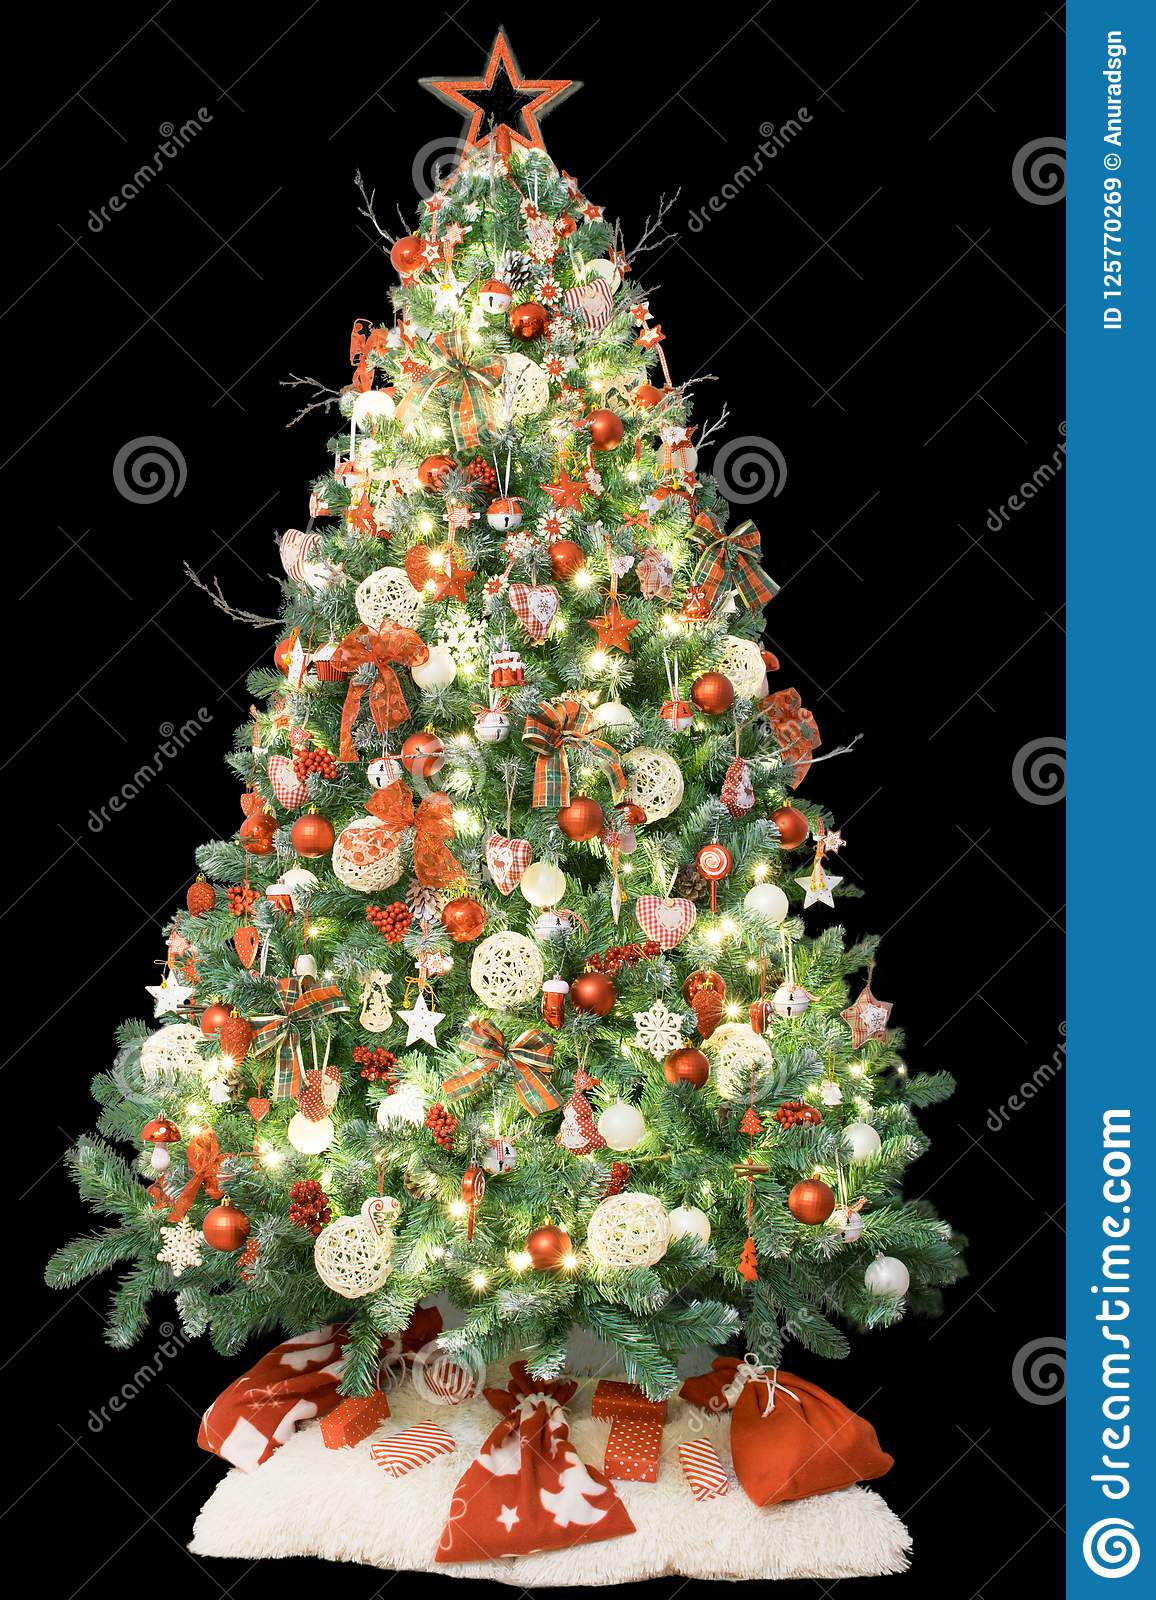 download modern christmas tree decorated with vintage ornaments lights and red white gifts - Christmas Tree With White Lights And Red Decorations